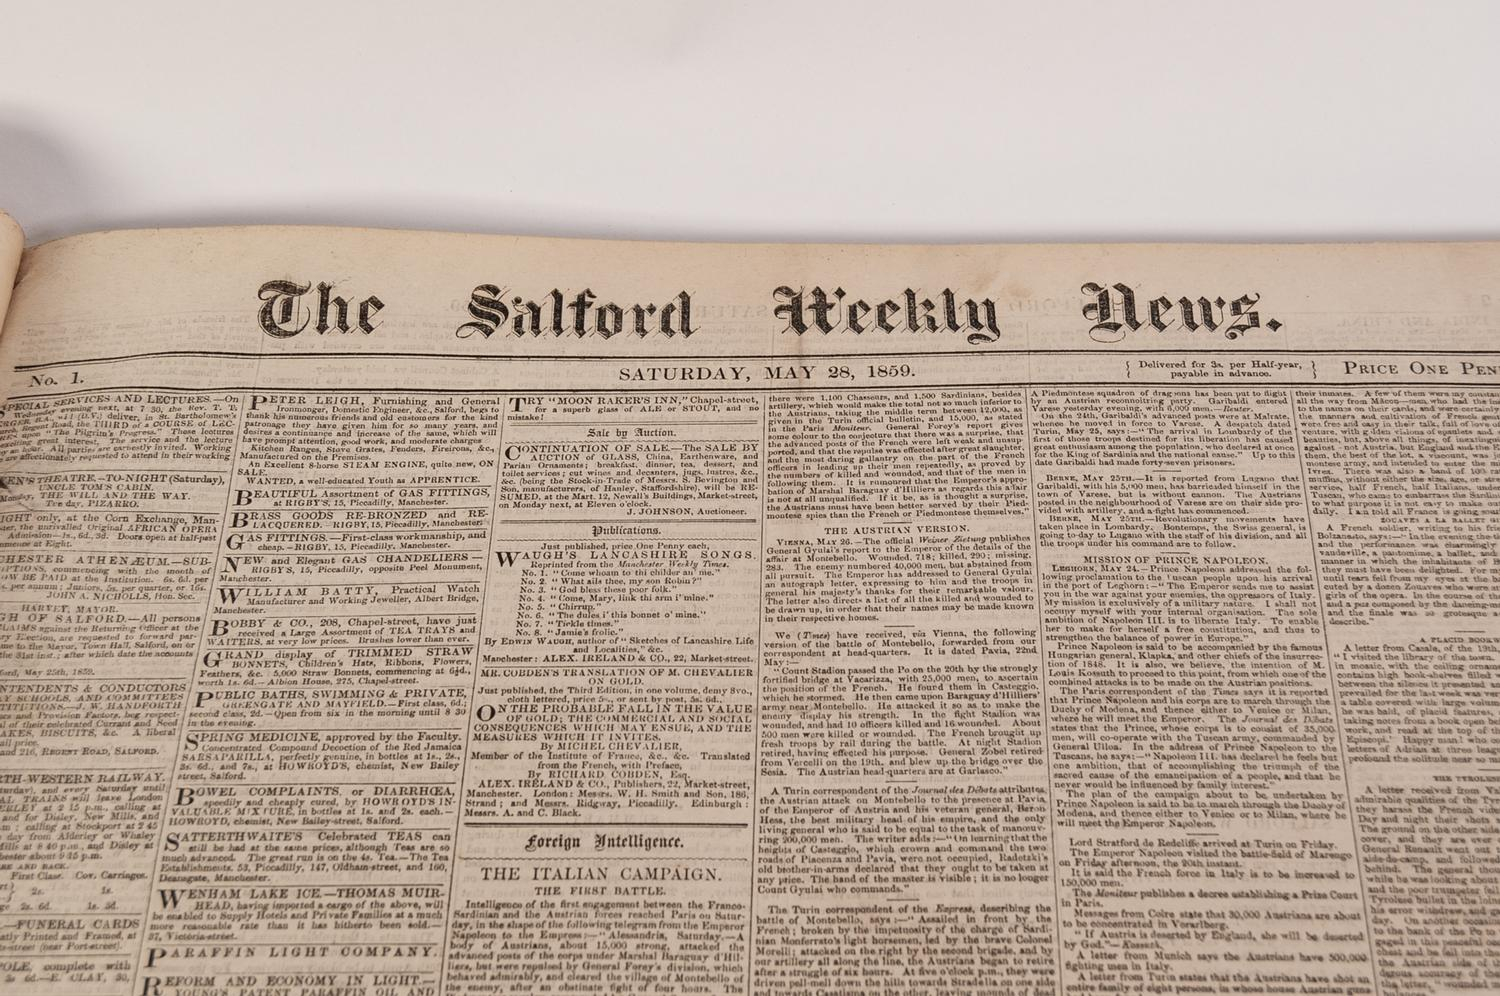 Lot 37 - SALFORD WEEKLY NEWS bound volume from No 1 - 28 May 1859 - No 32 - 31 December 1859. Large folio,